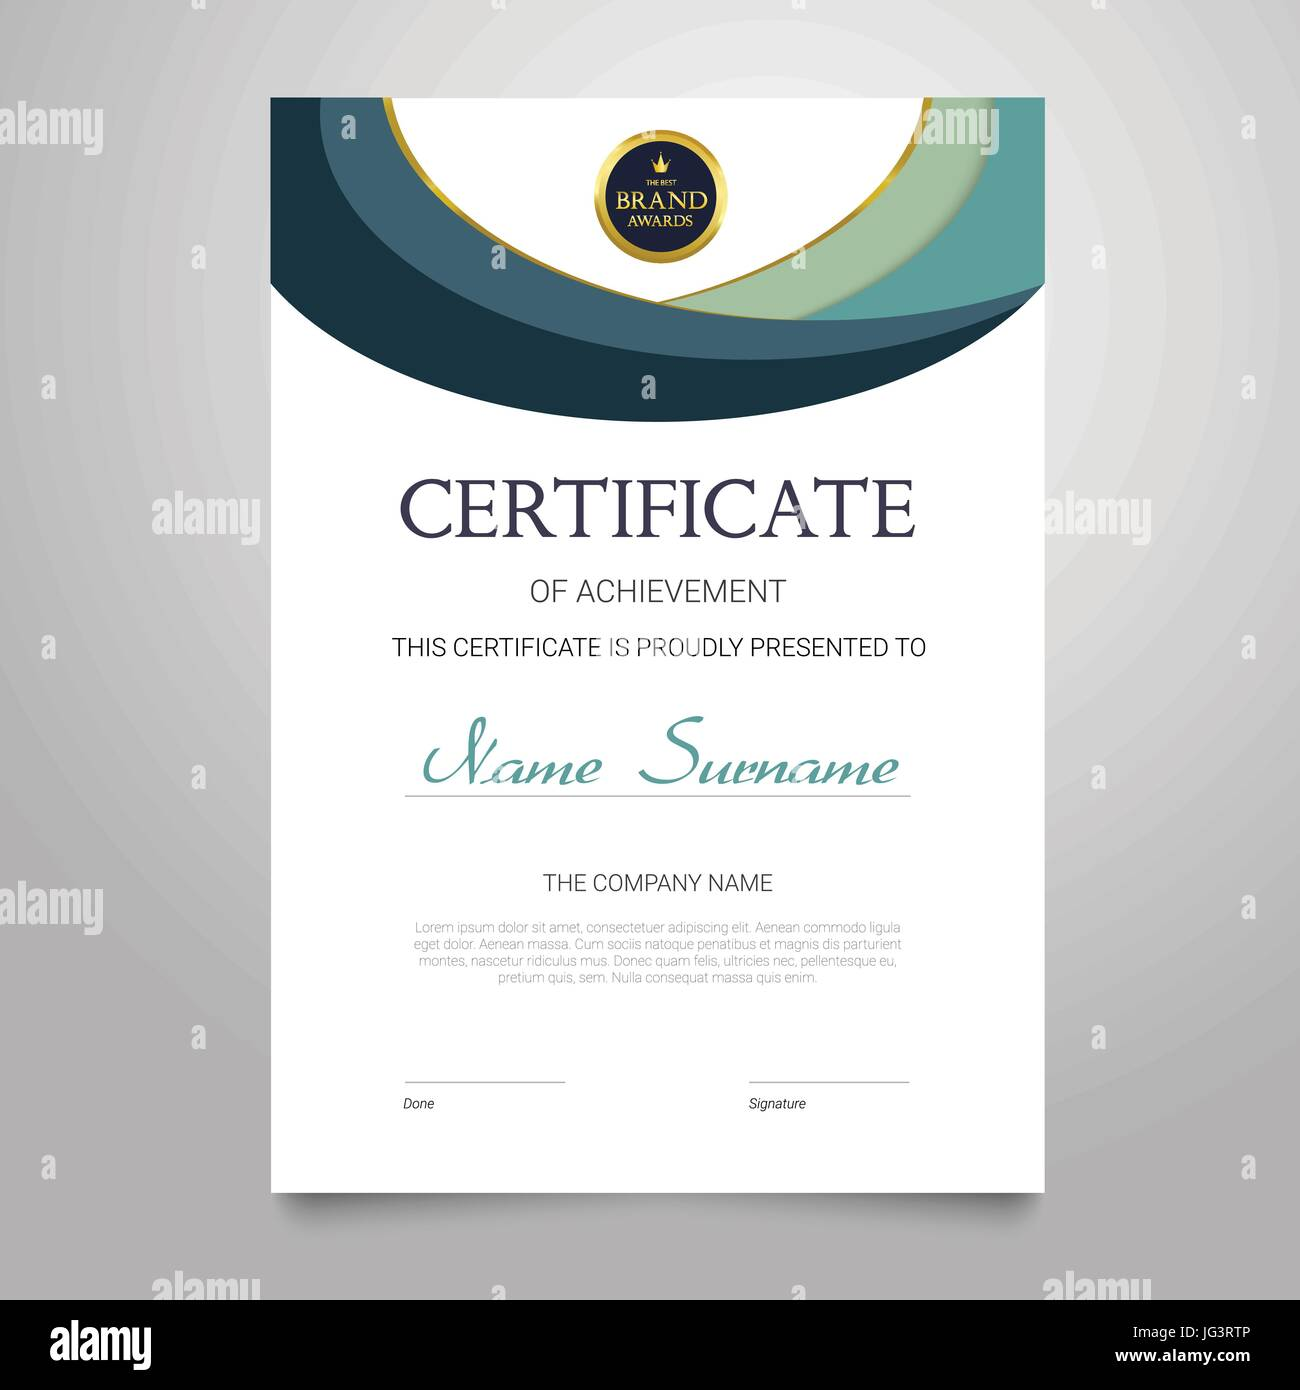 Certificate template modern vertical elegant vector document with certificate template modern vertical elegant vector document with luxury design diploma of achievement appreciation with copy space for name surn yelopaper Image collections